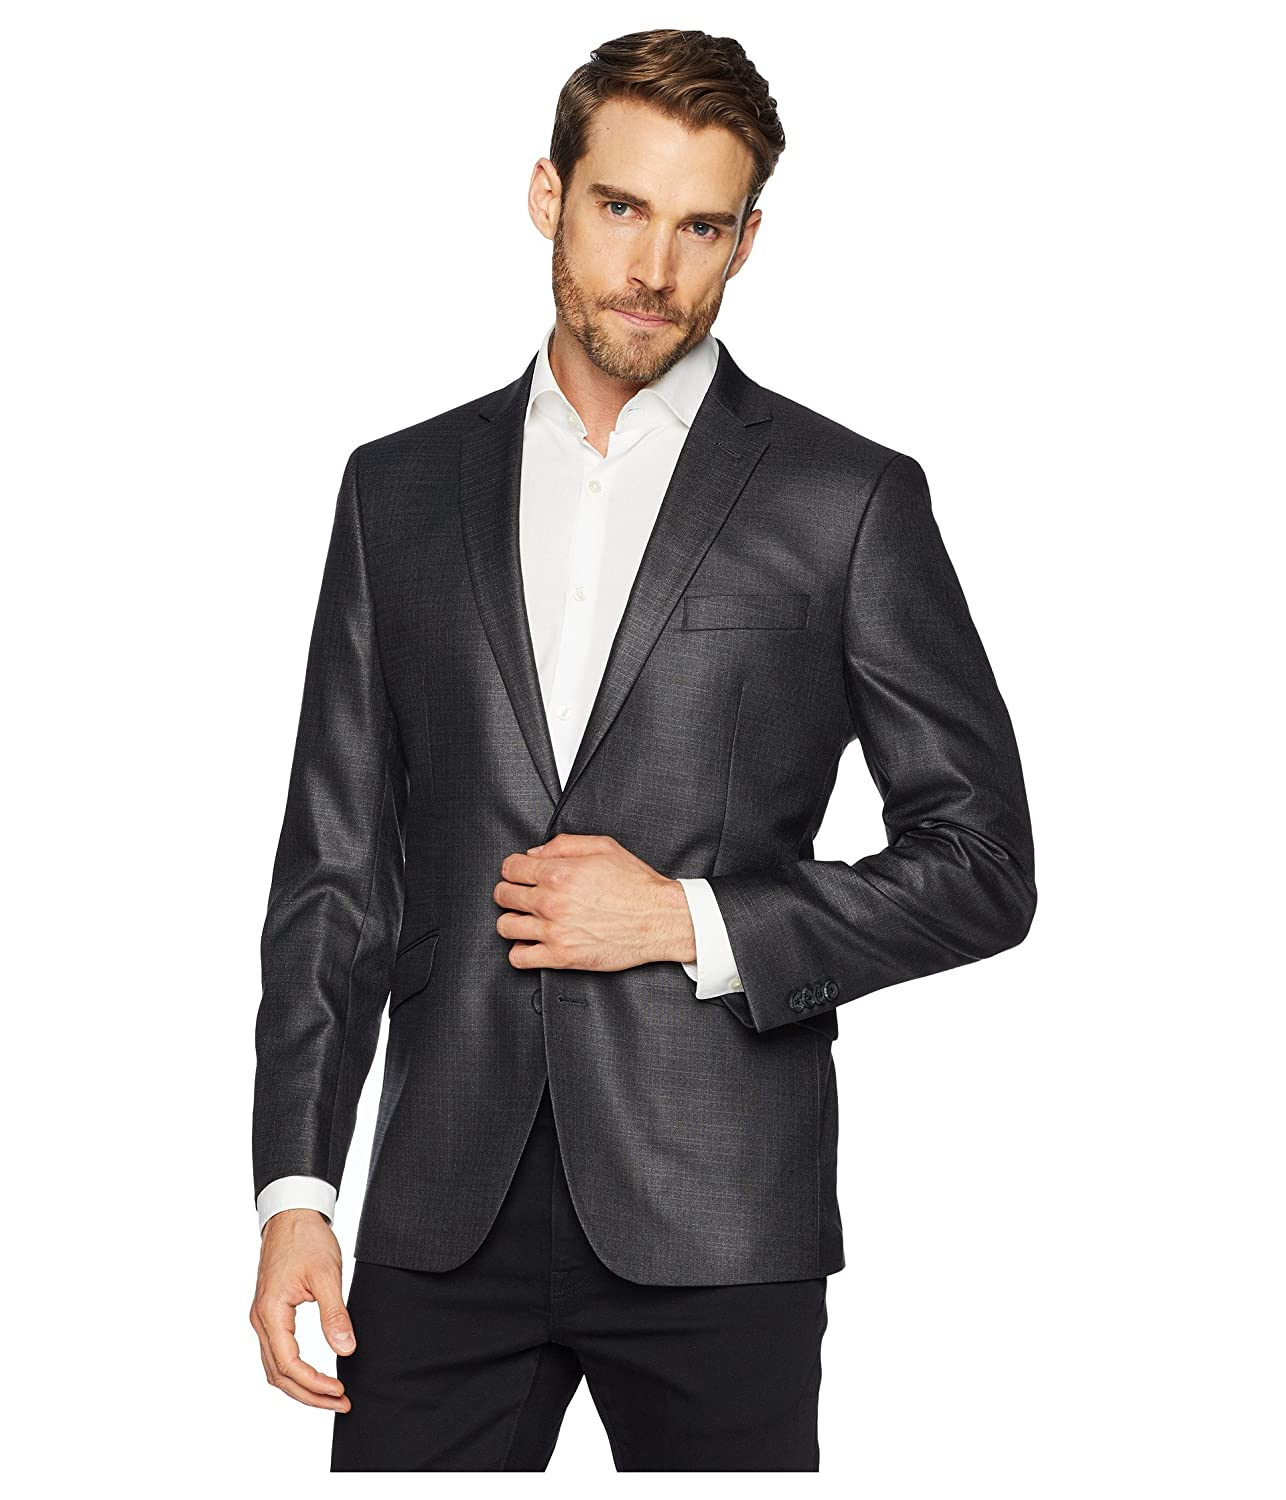 [ケネスコール] メンズ コート Techni-Cole Stretch Suit Separate Blazer [並行輸入品] B07DS6R5W8  44 Regular